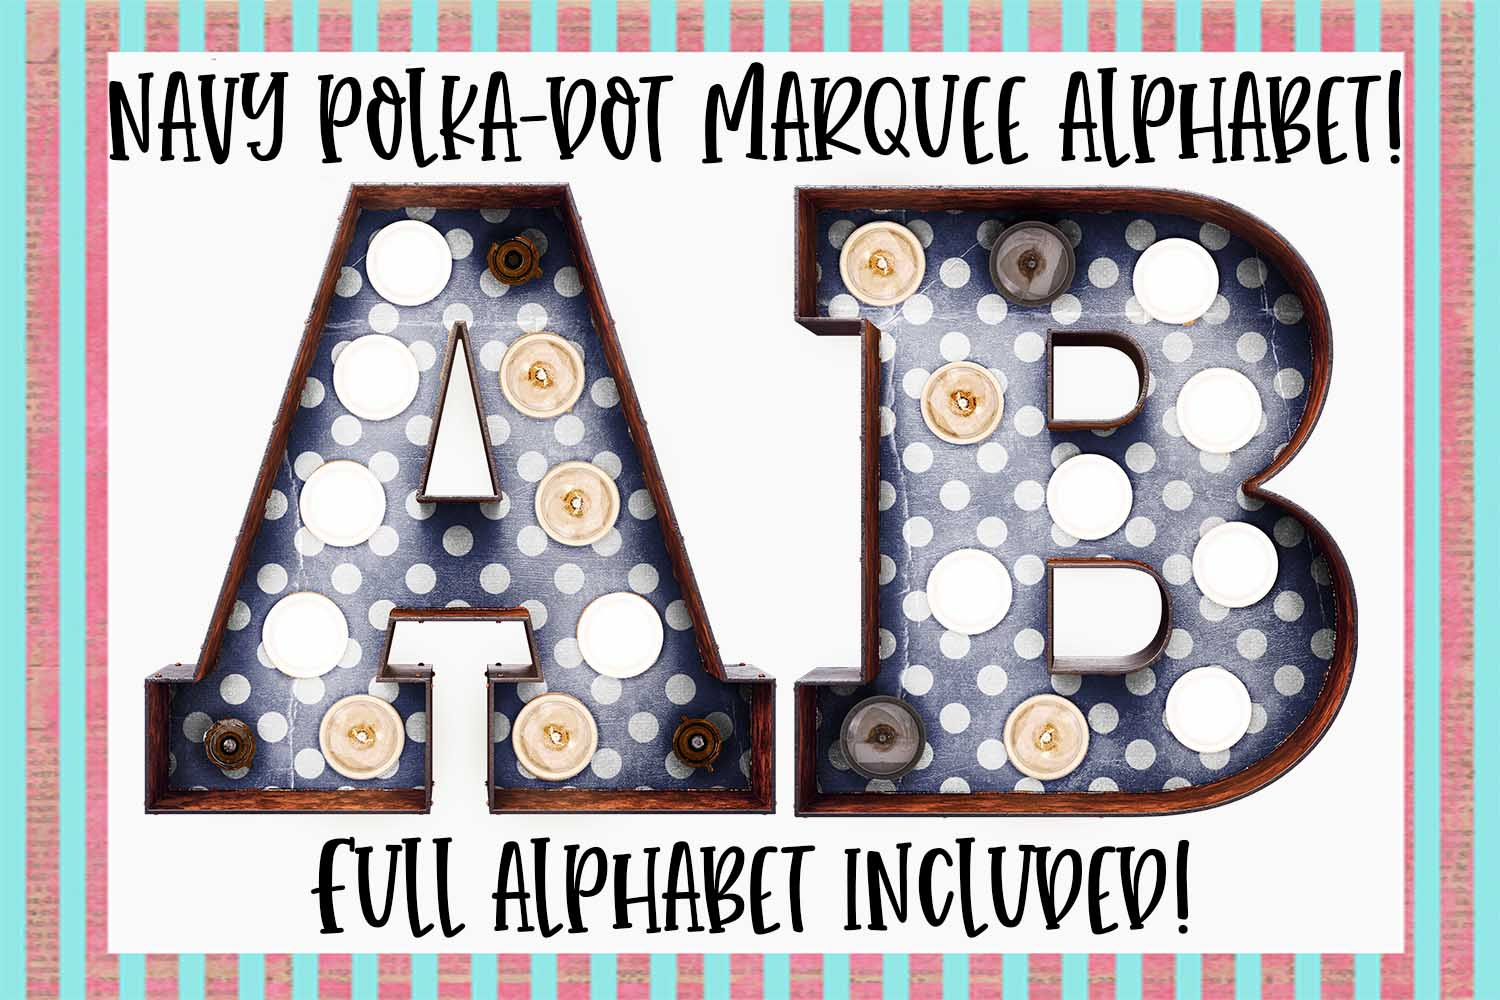 Navy Polka-Dot Marquee Sublimation Digital Download example image 1